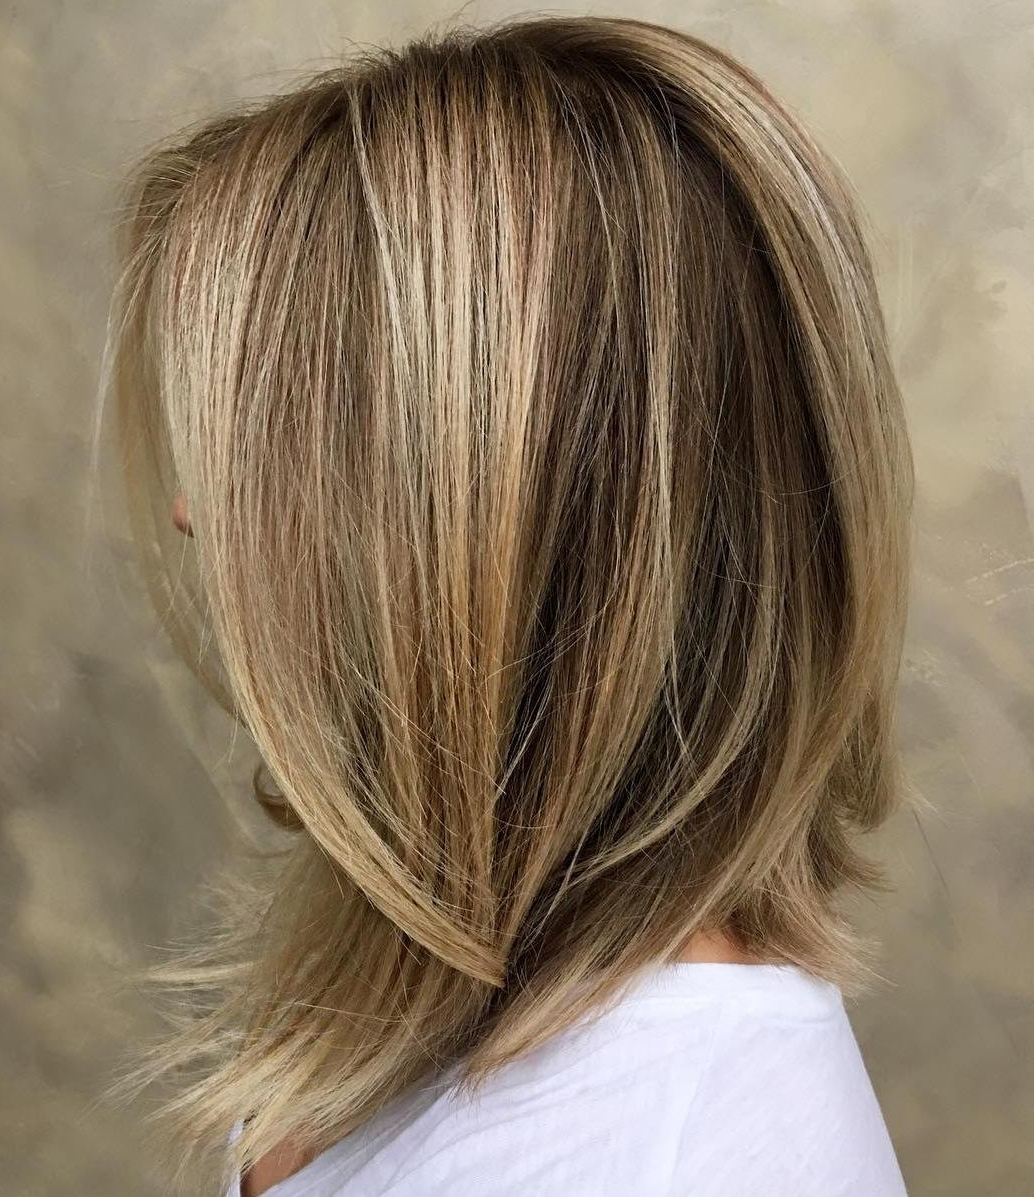 Trendy Bronde Bob With Highlighted Bangs Pertaining To 60 Inspiring Long Bob Hairstyles And Lob Haircuts (View 10 of 20)